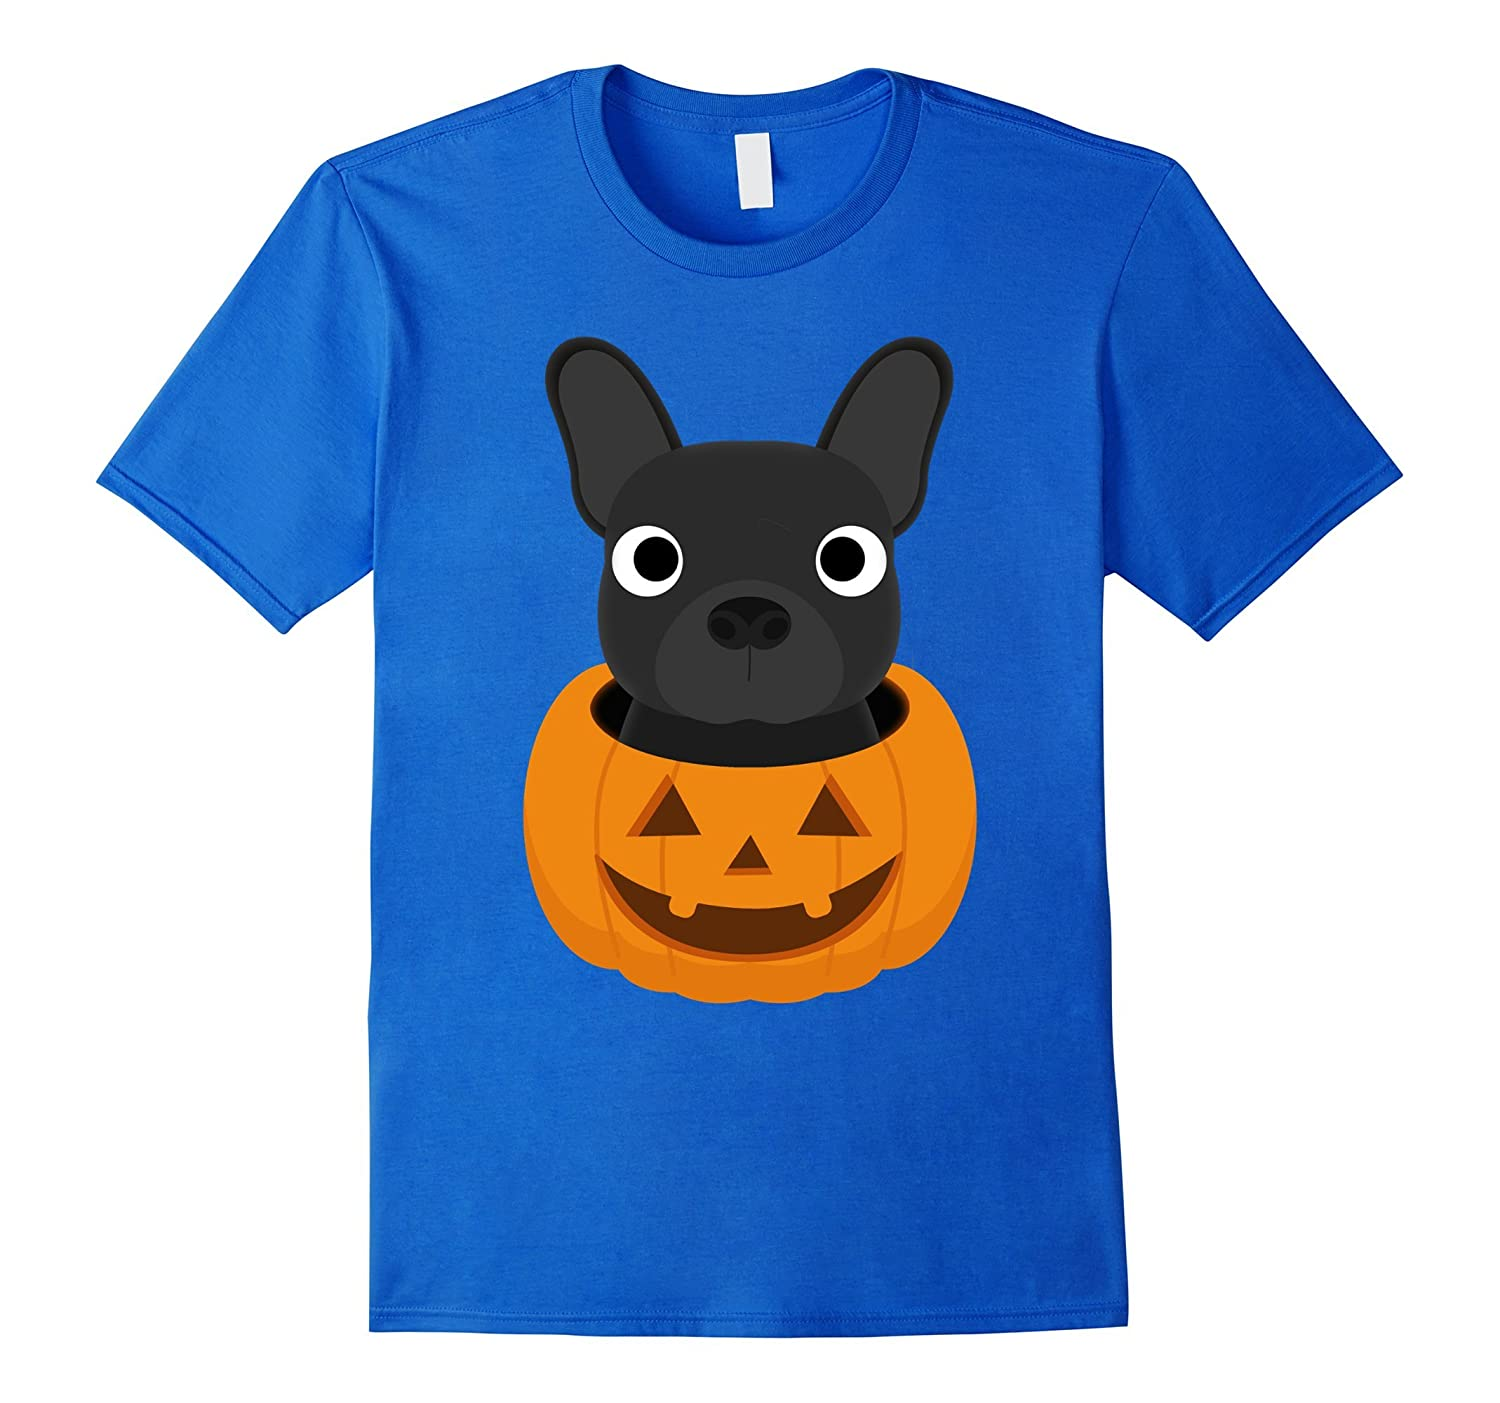 4509cab6 Halloween costume gifts French bulldog dog lover t shirt-ANZ ...